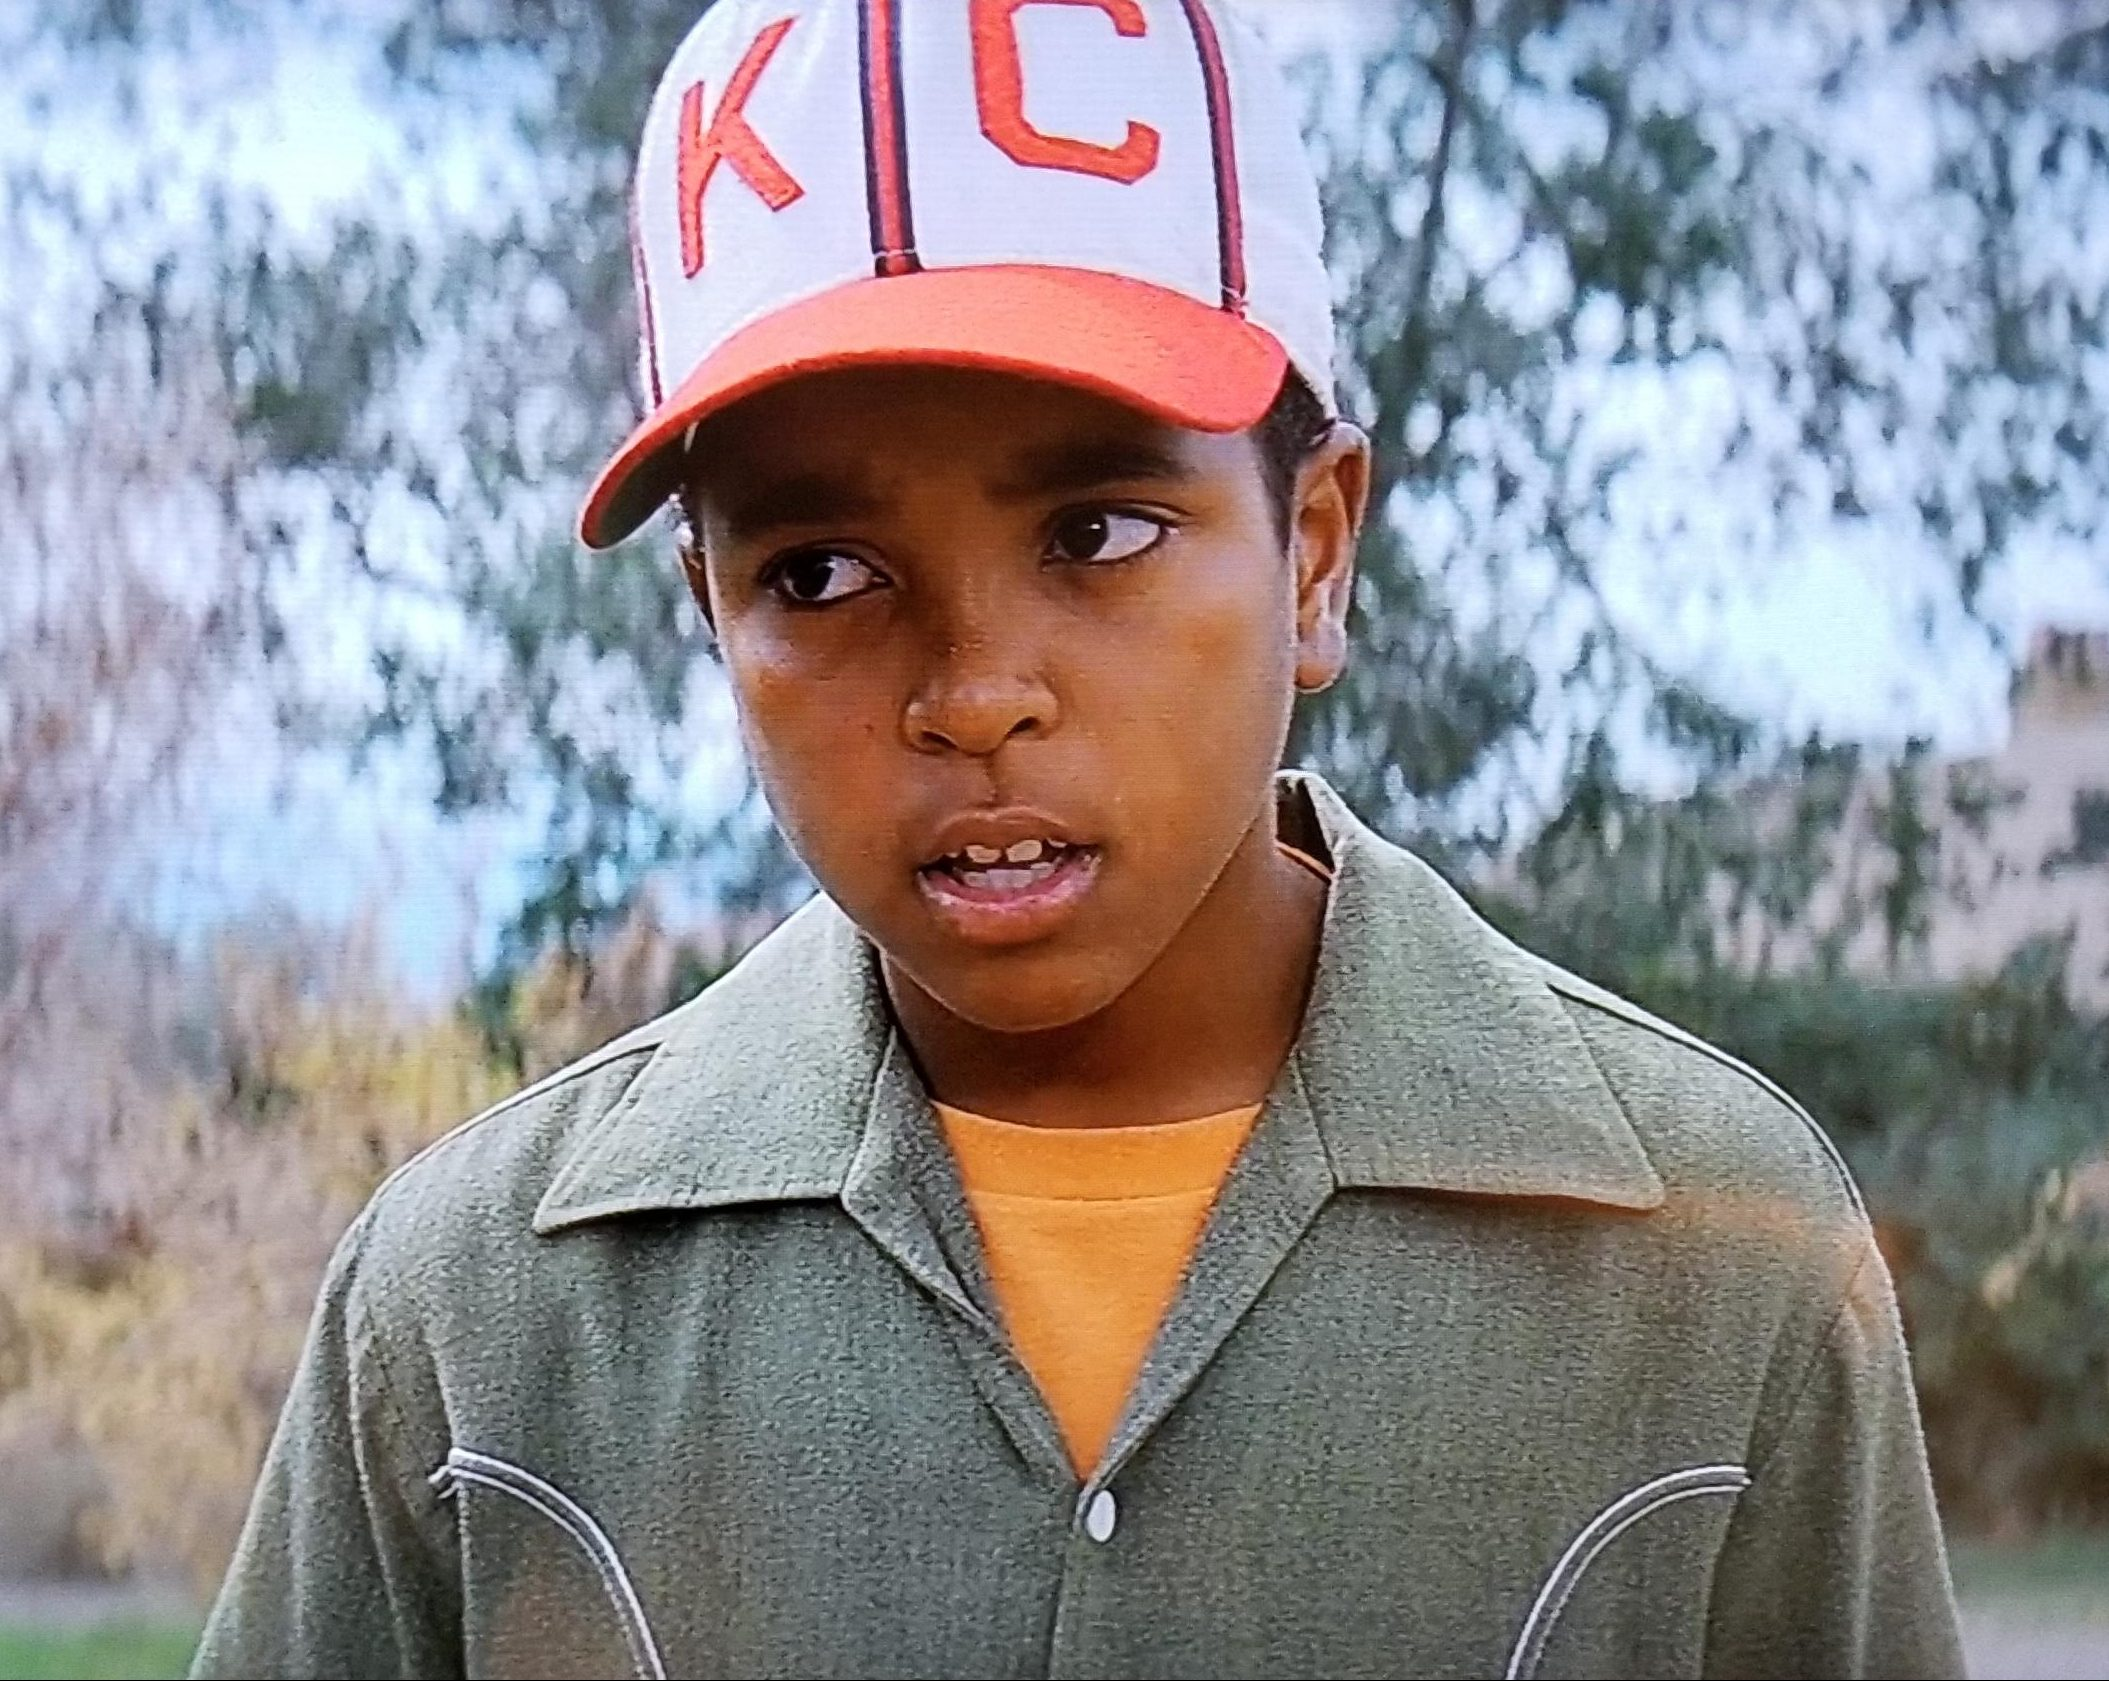 32 2 e1599642810284 20 Home Run-Hitting Facts About The 1993 Film The Sandlot